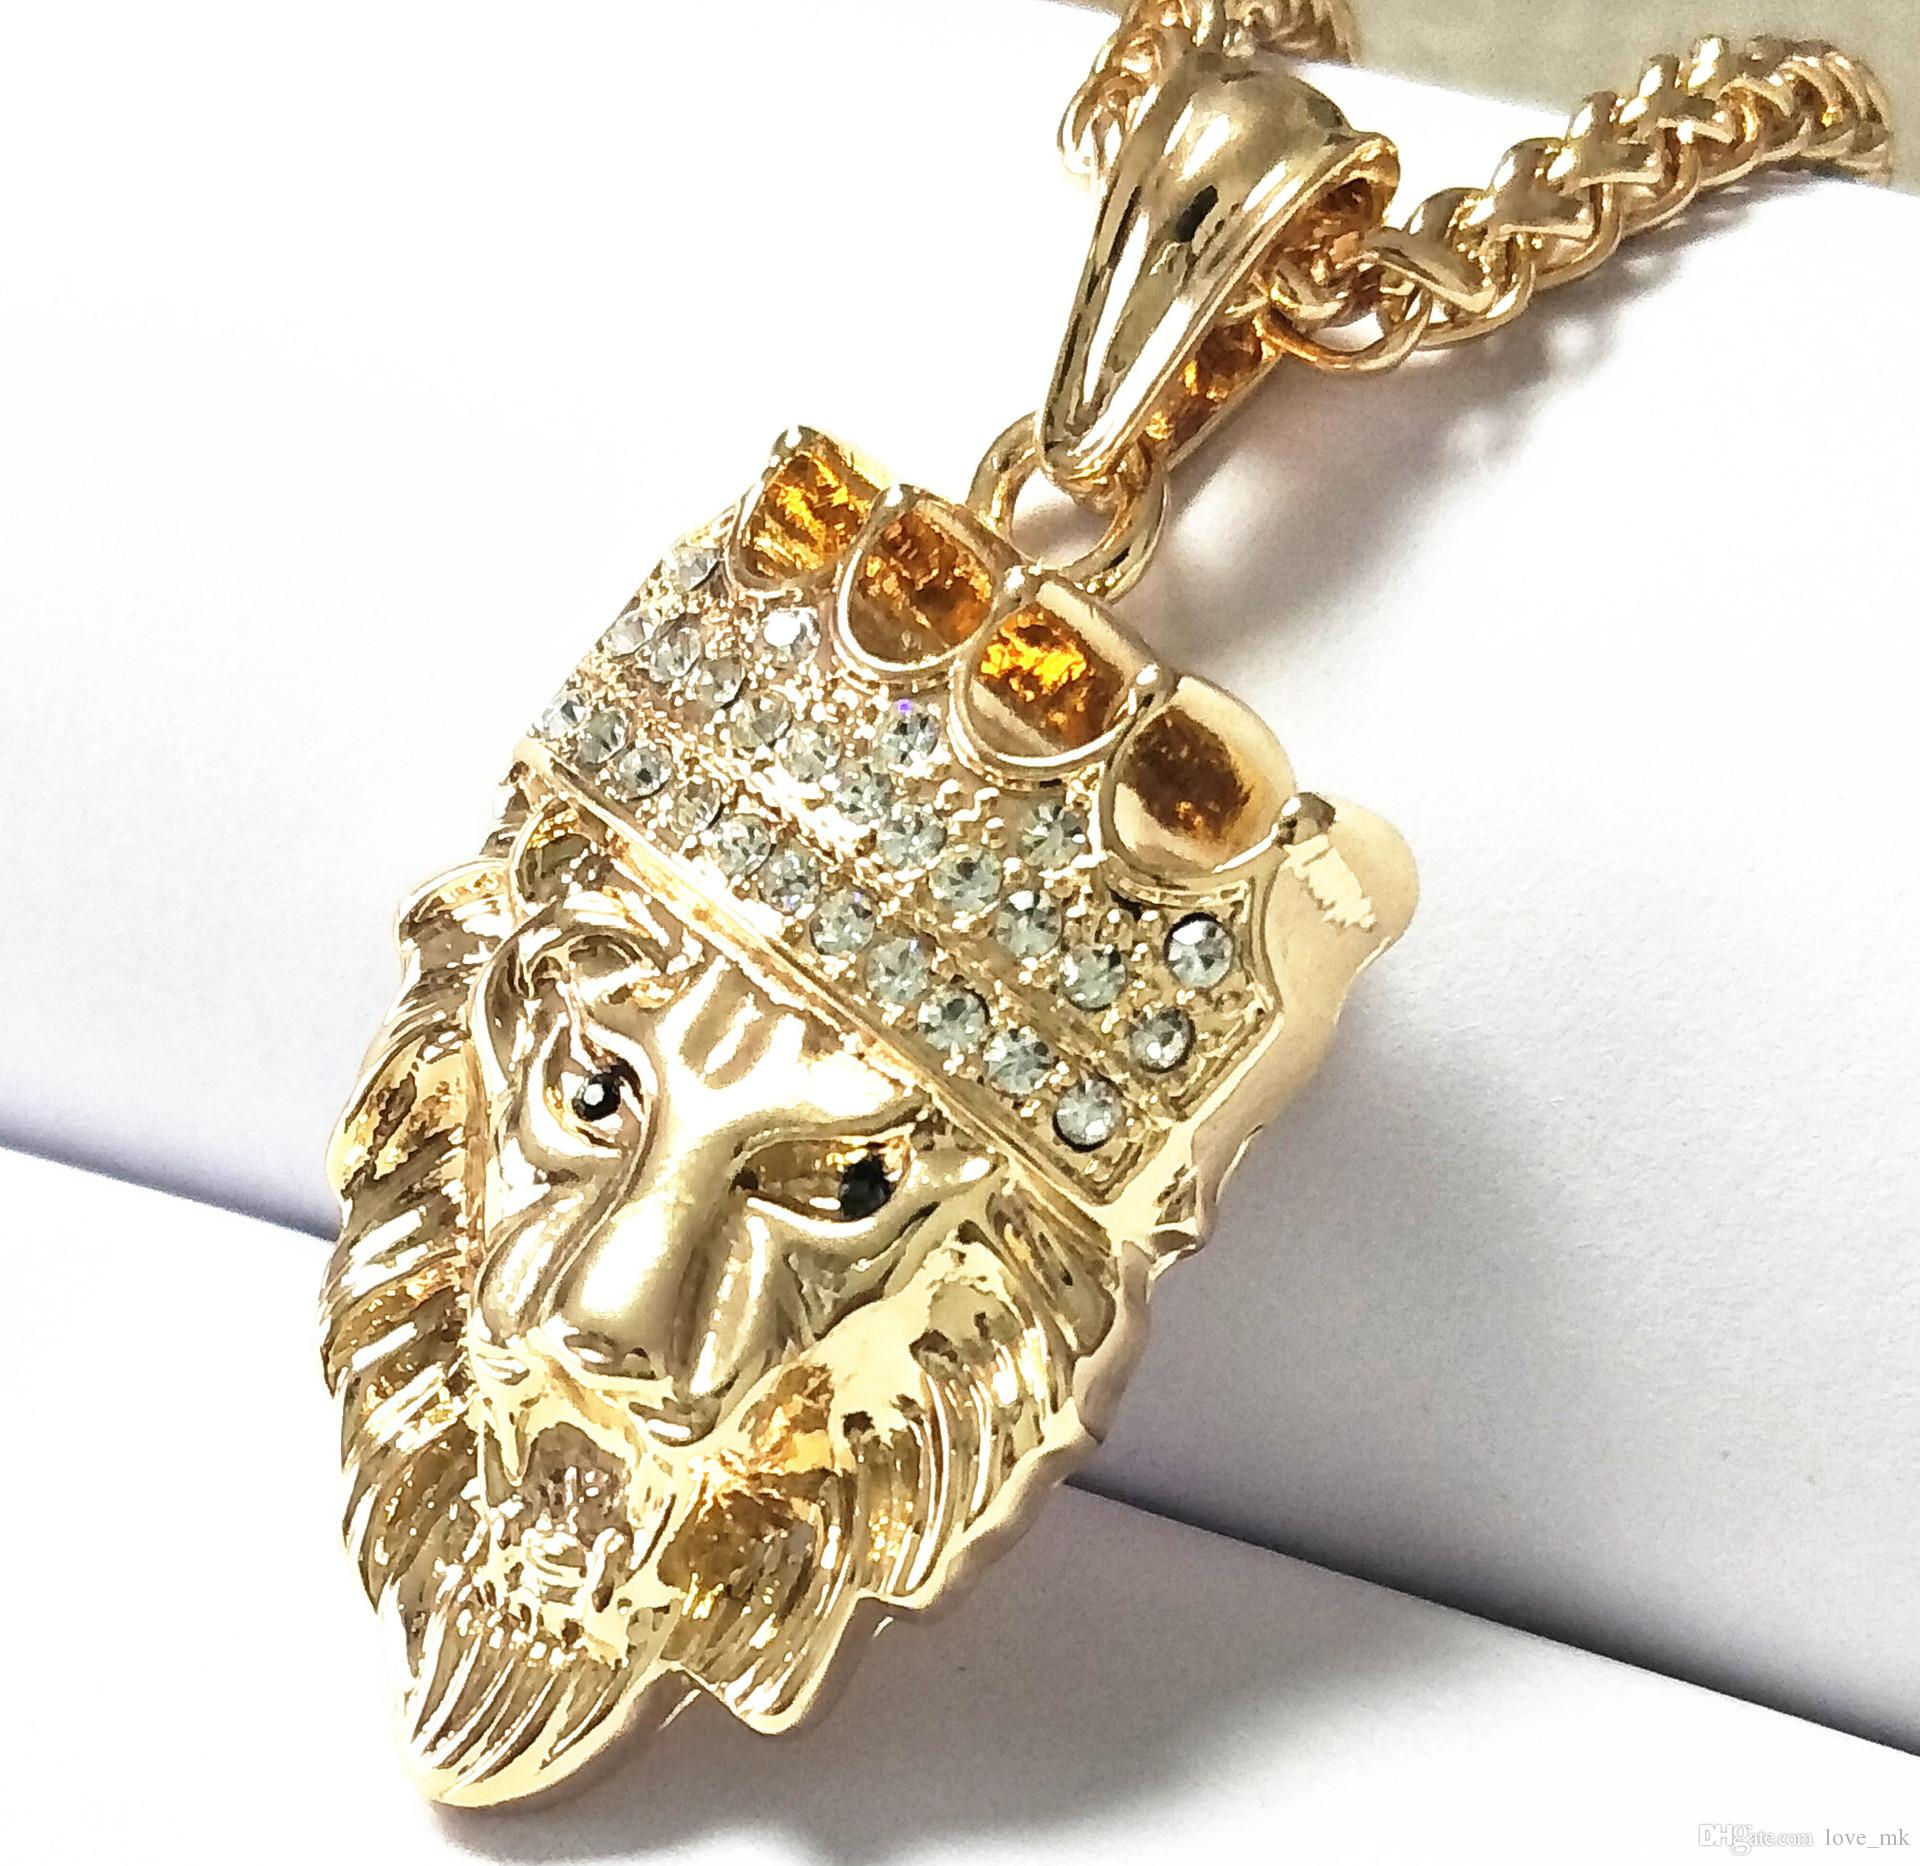 van lion christie arpels online christies necklace s jewels cleef pendant